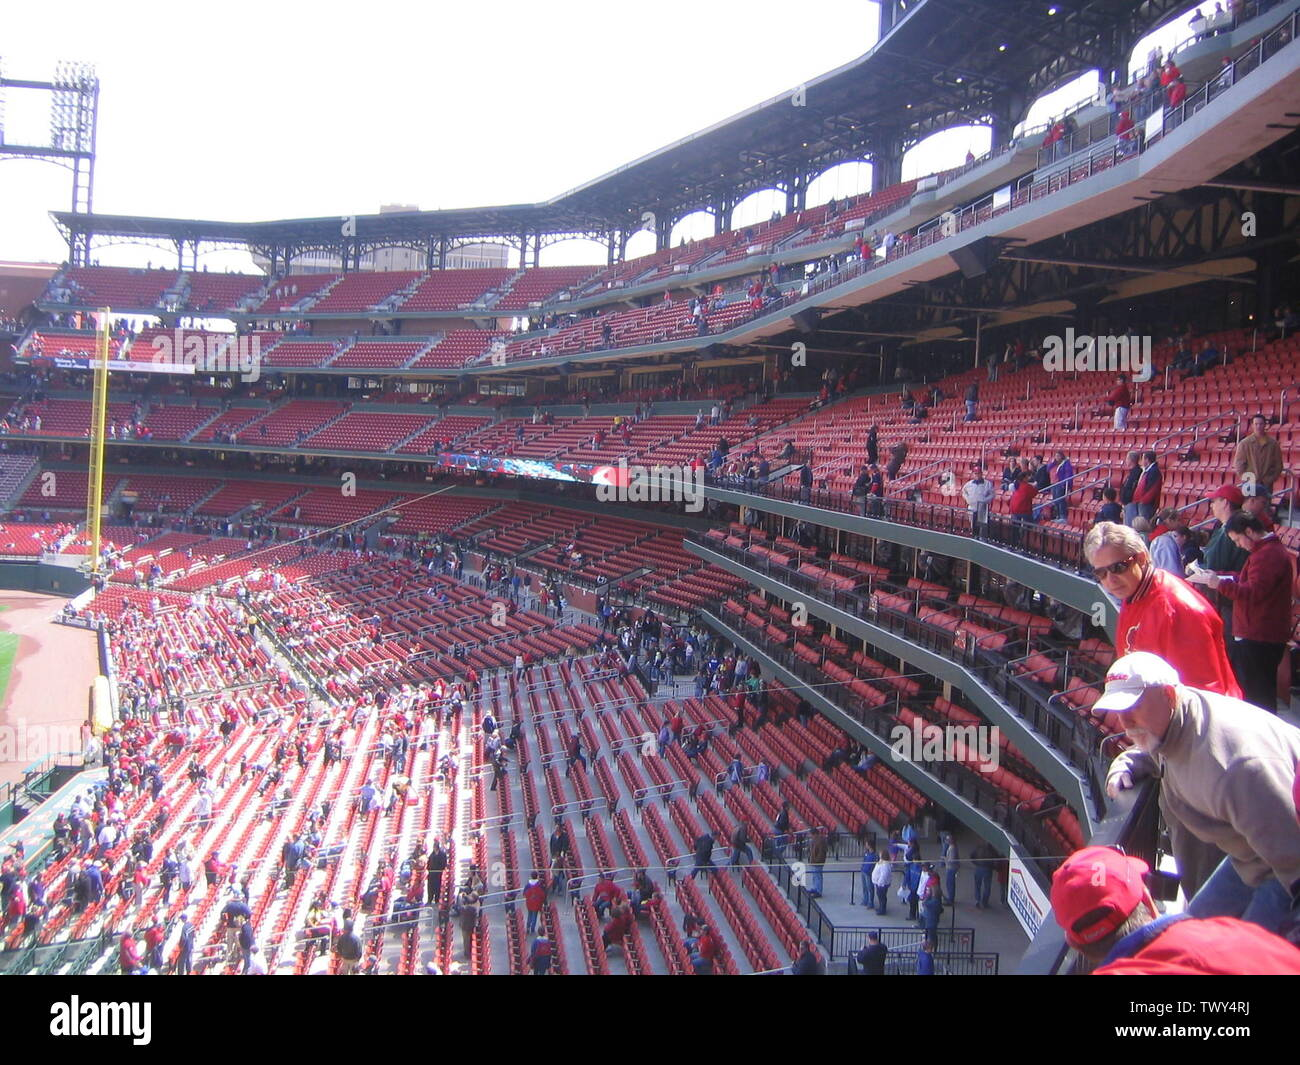 'Image take at Busch Stadium Open House, April 8th 2006  16:03, 28 April 2006 . . Mdglazerman . . 2048×1536 (1,193,406 bytes); Commons upload by Soxrock 11:10, 19 August 2007 (UTC); From en.wikipedia; description page is (was) here; User Mdglazerman on en.wikipedia; ' - Stock Image